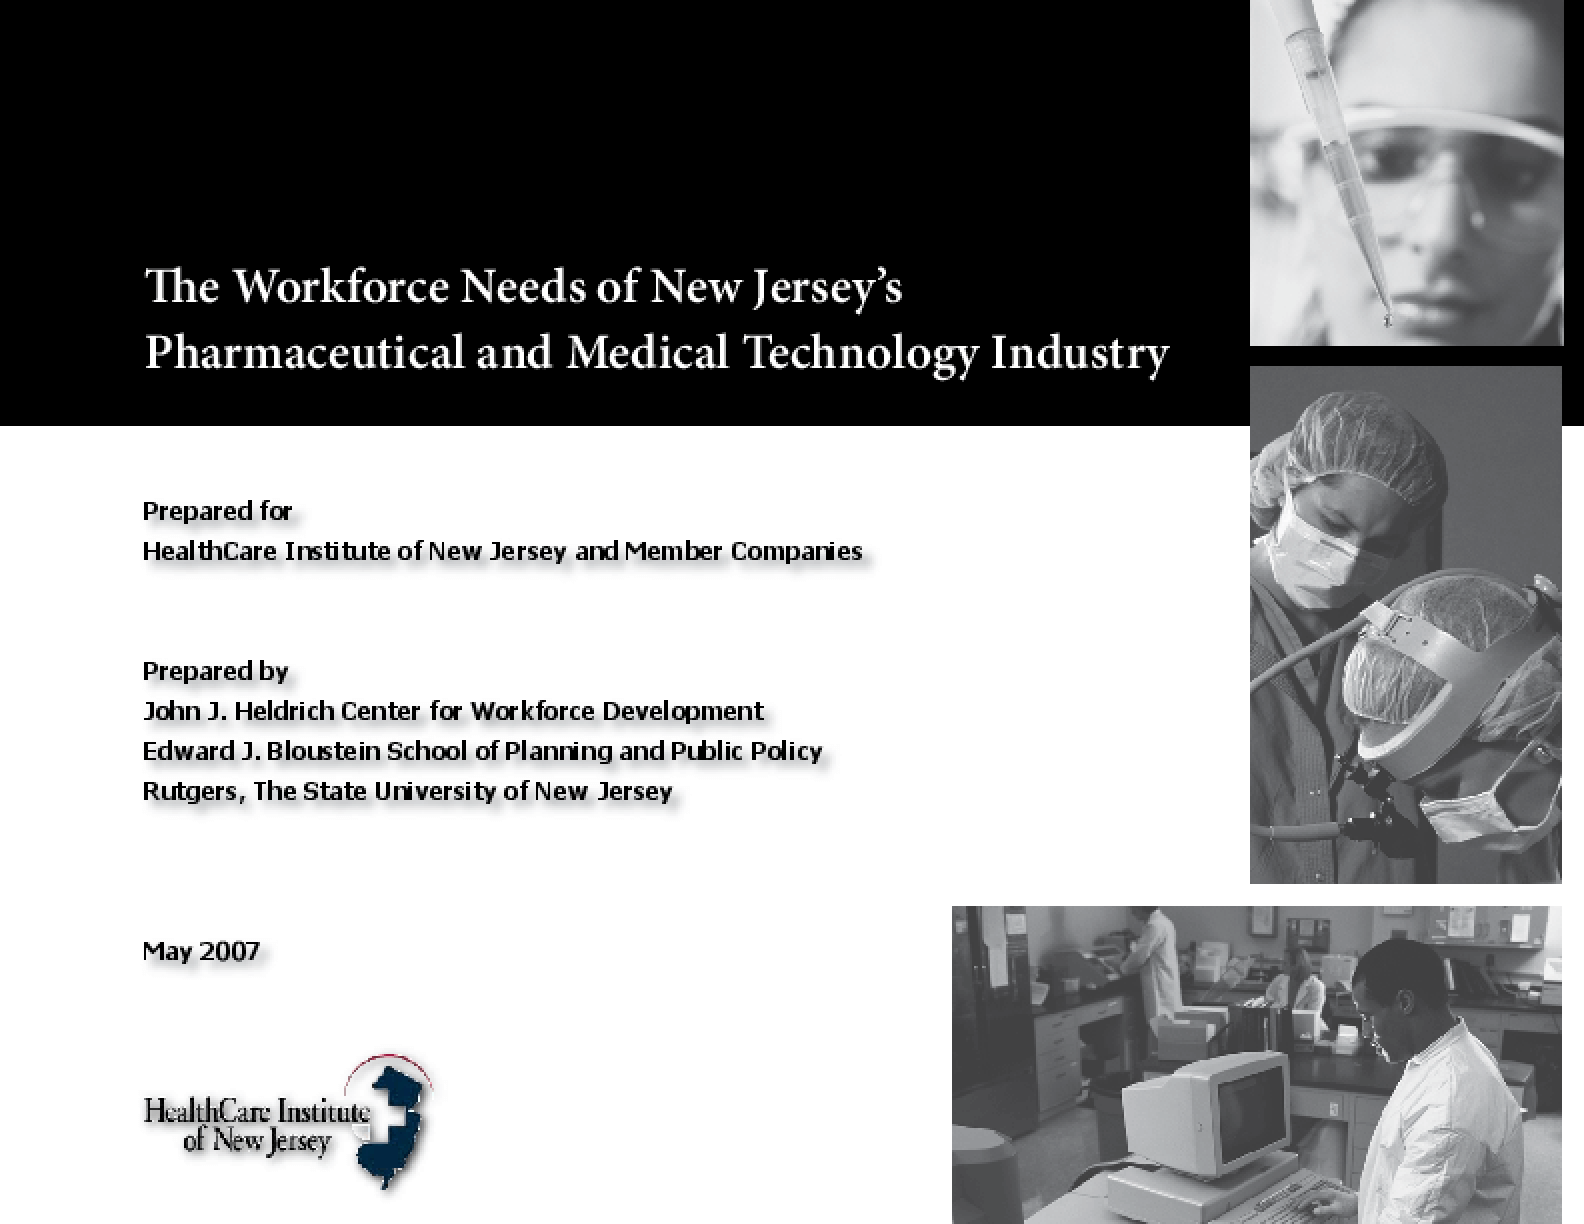 The Workforce Needs of New Jersey's Pharmaceutical and Medical Technology Industry